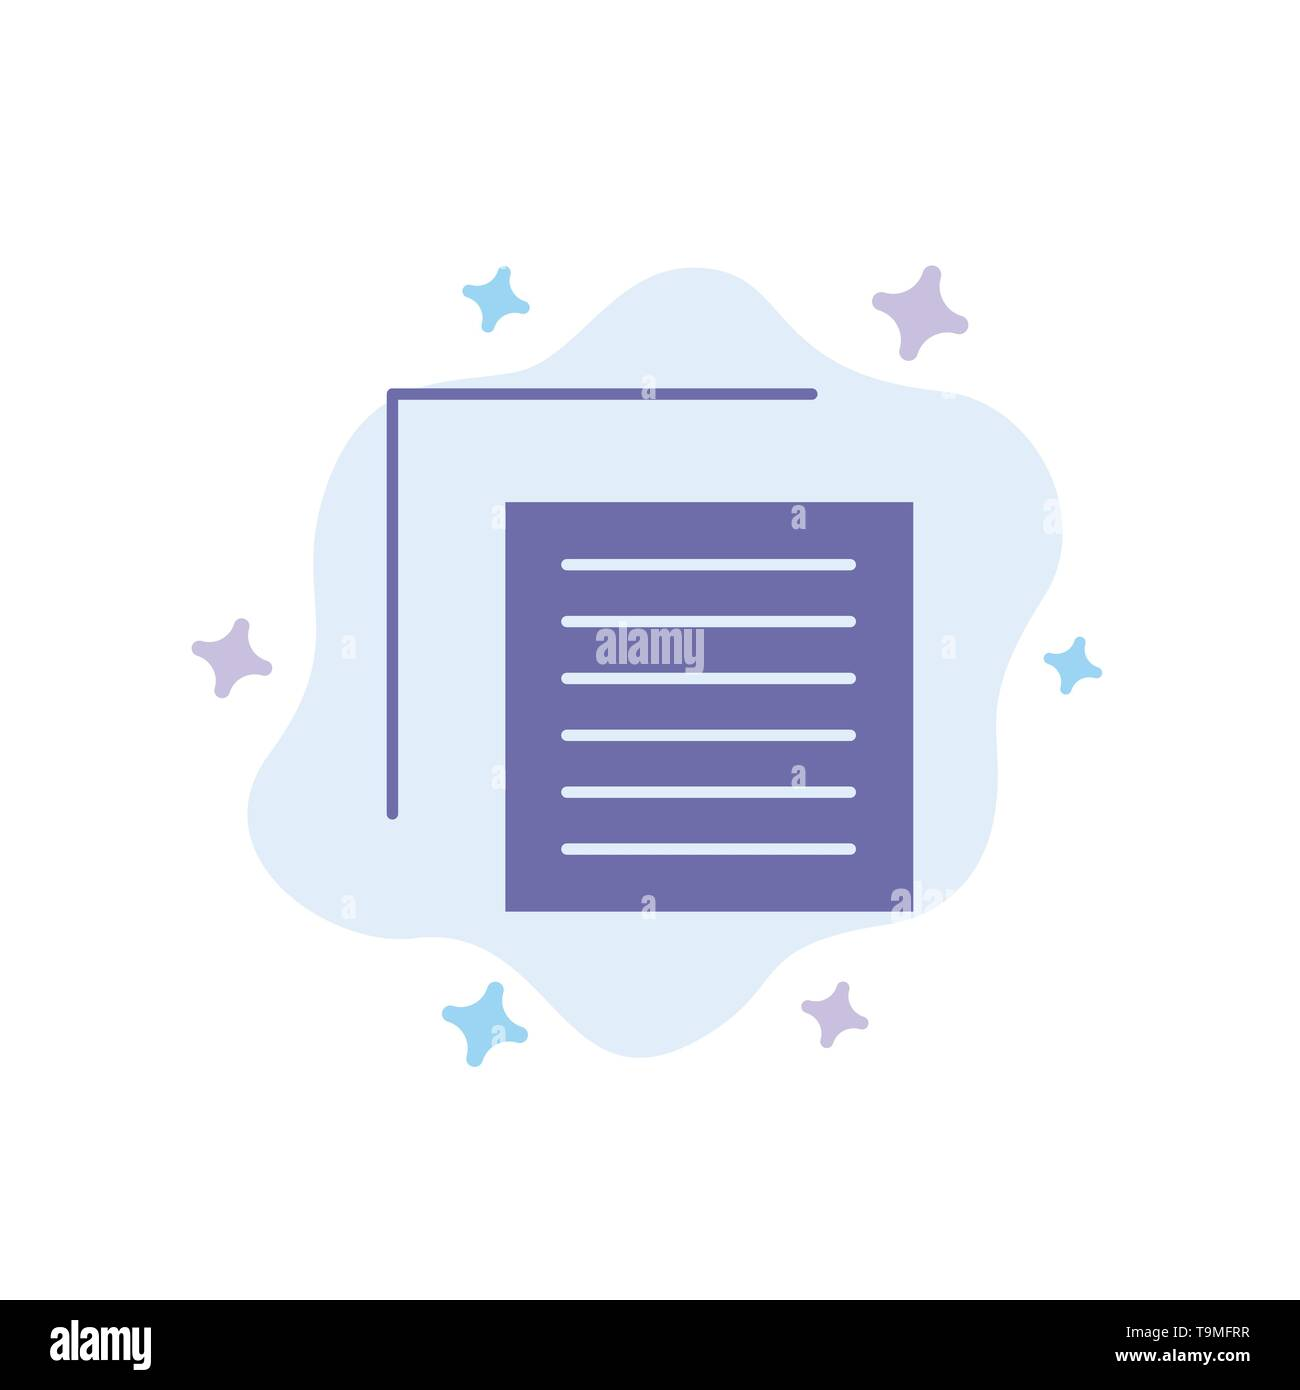 Document, File, User, Interface Blue Icon on Abstract Cloud Background - Stock Image